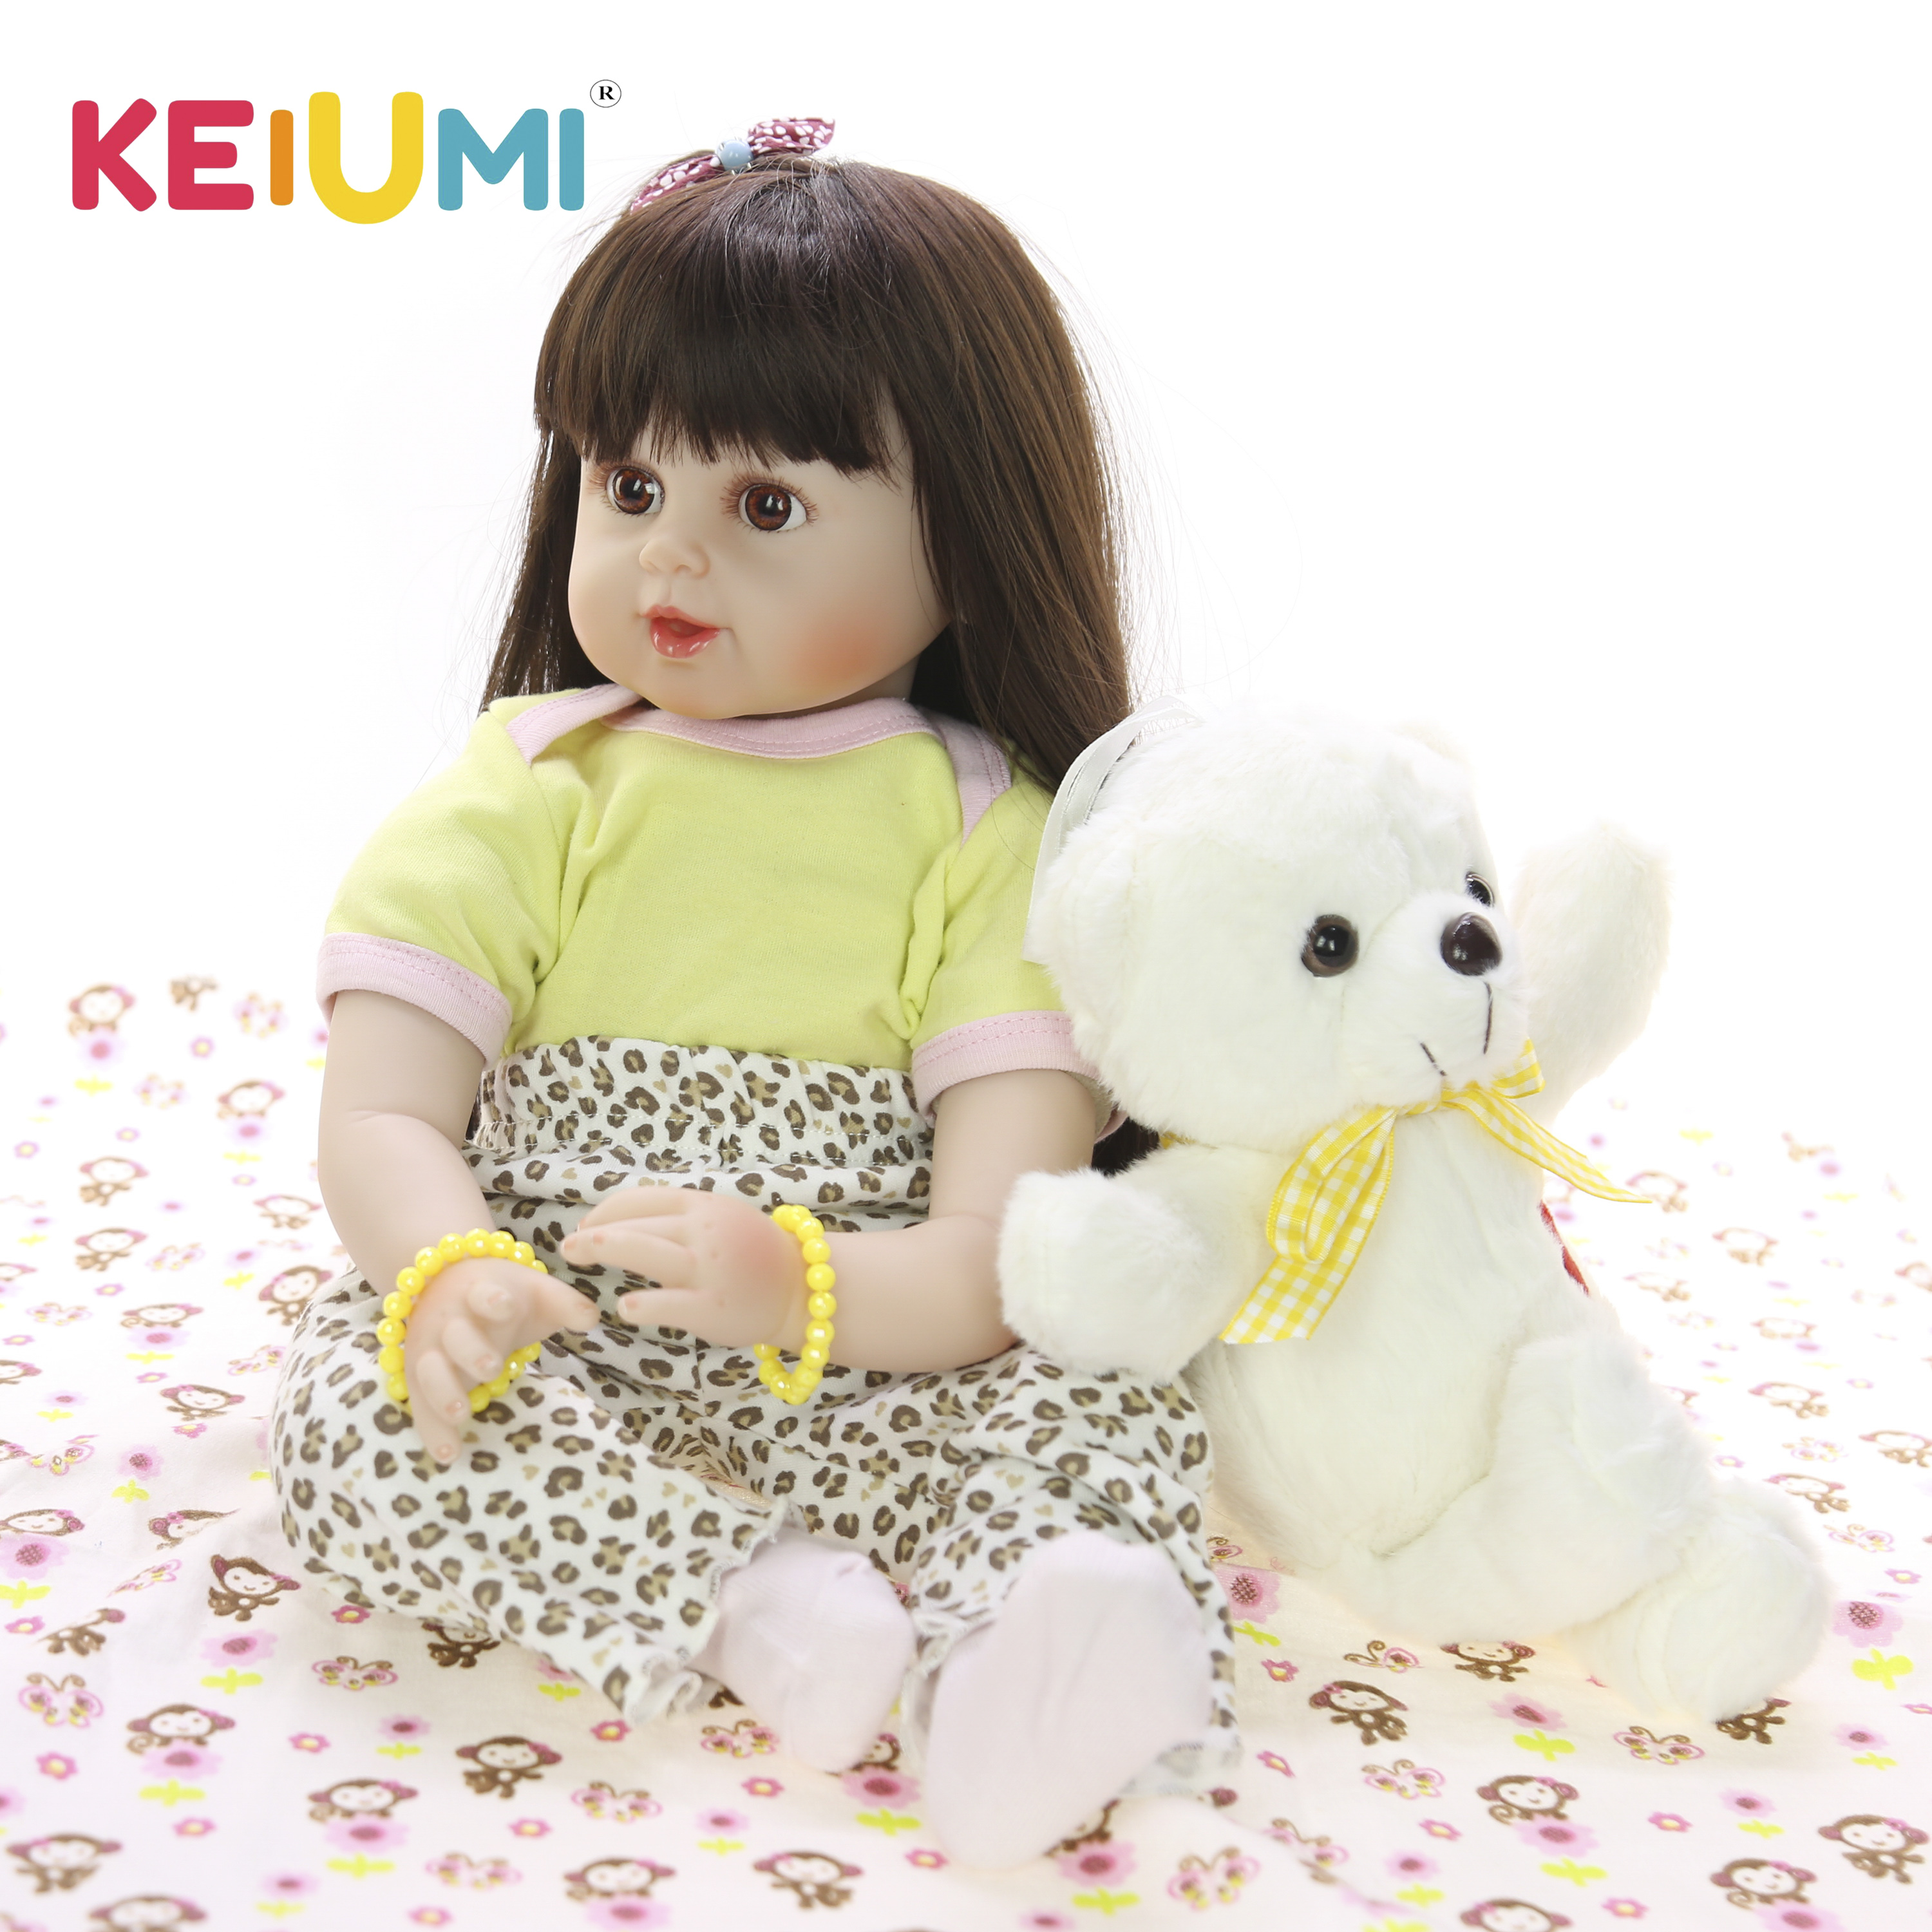 KEIUMI Lovely 24 60 cm Reborn Toy Soft Touch Silicone Vinyl Newborn Doll For Girl Alive Reborn Baby Doll Cloth Body Kids GiftsKEIUMI Lovely 24 60 cm Reborn Toy Soft Touch Silicone Vinyl Newborn Doll For Girl Alive Reborn Baby Doll Cloth Body Kids Gifts